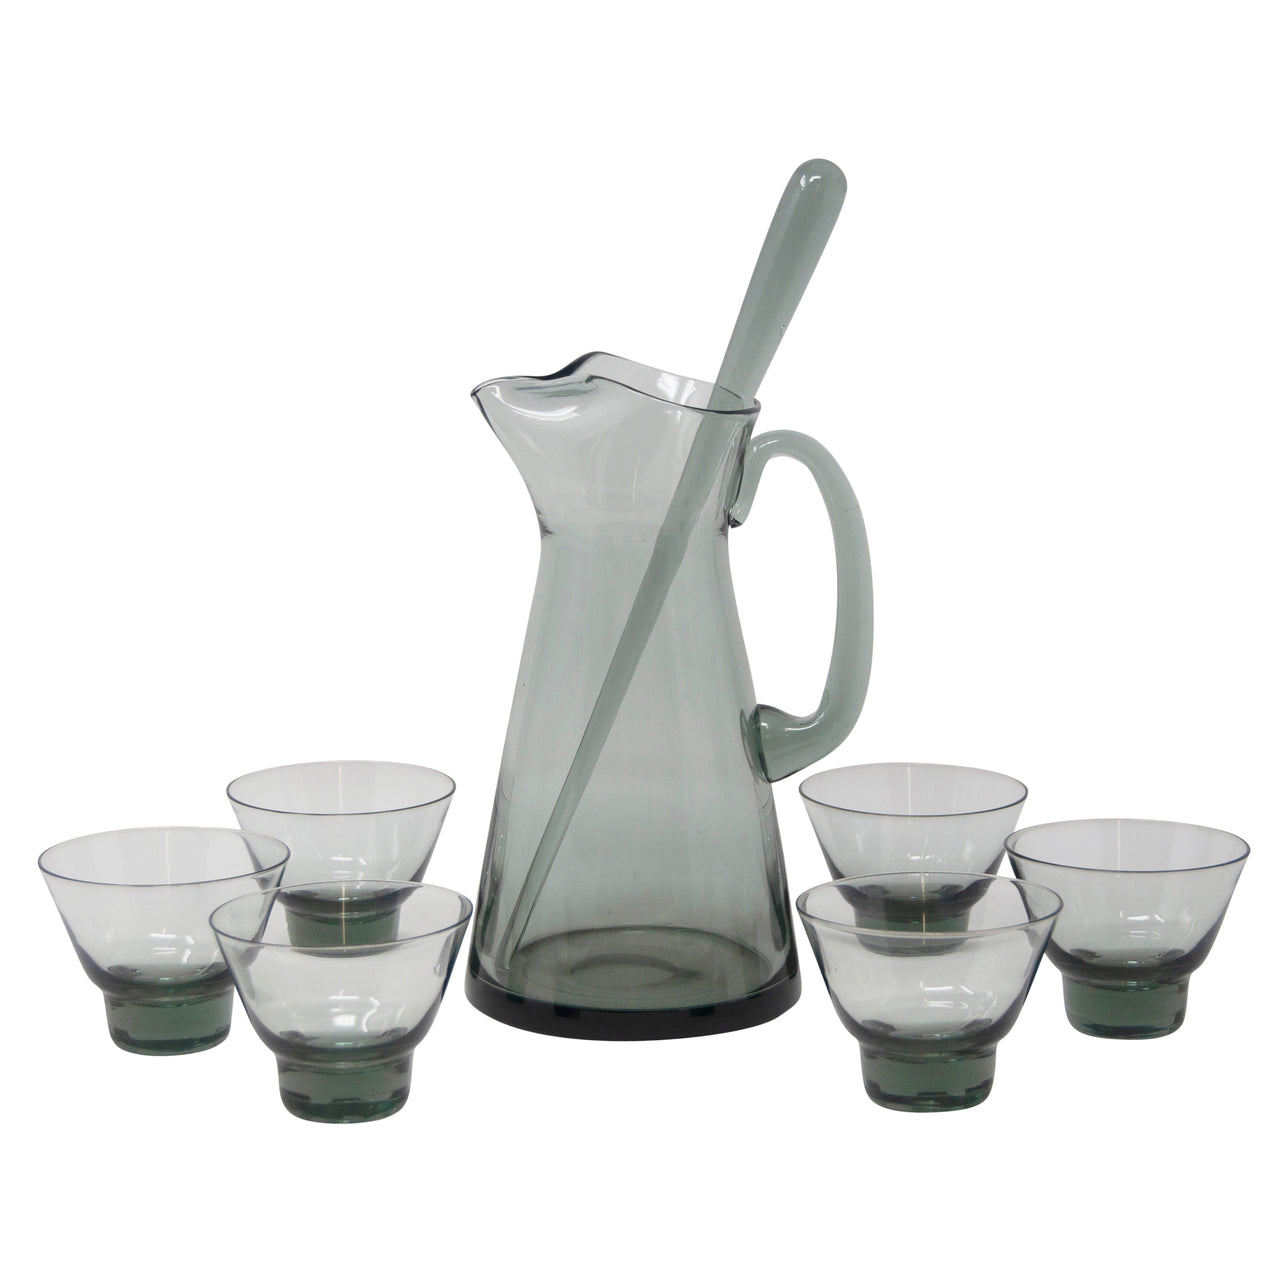 Vintage Danish Modern Hand Blown Smoke Glass Cocktail Pitcher Set | The Hour